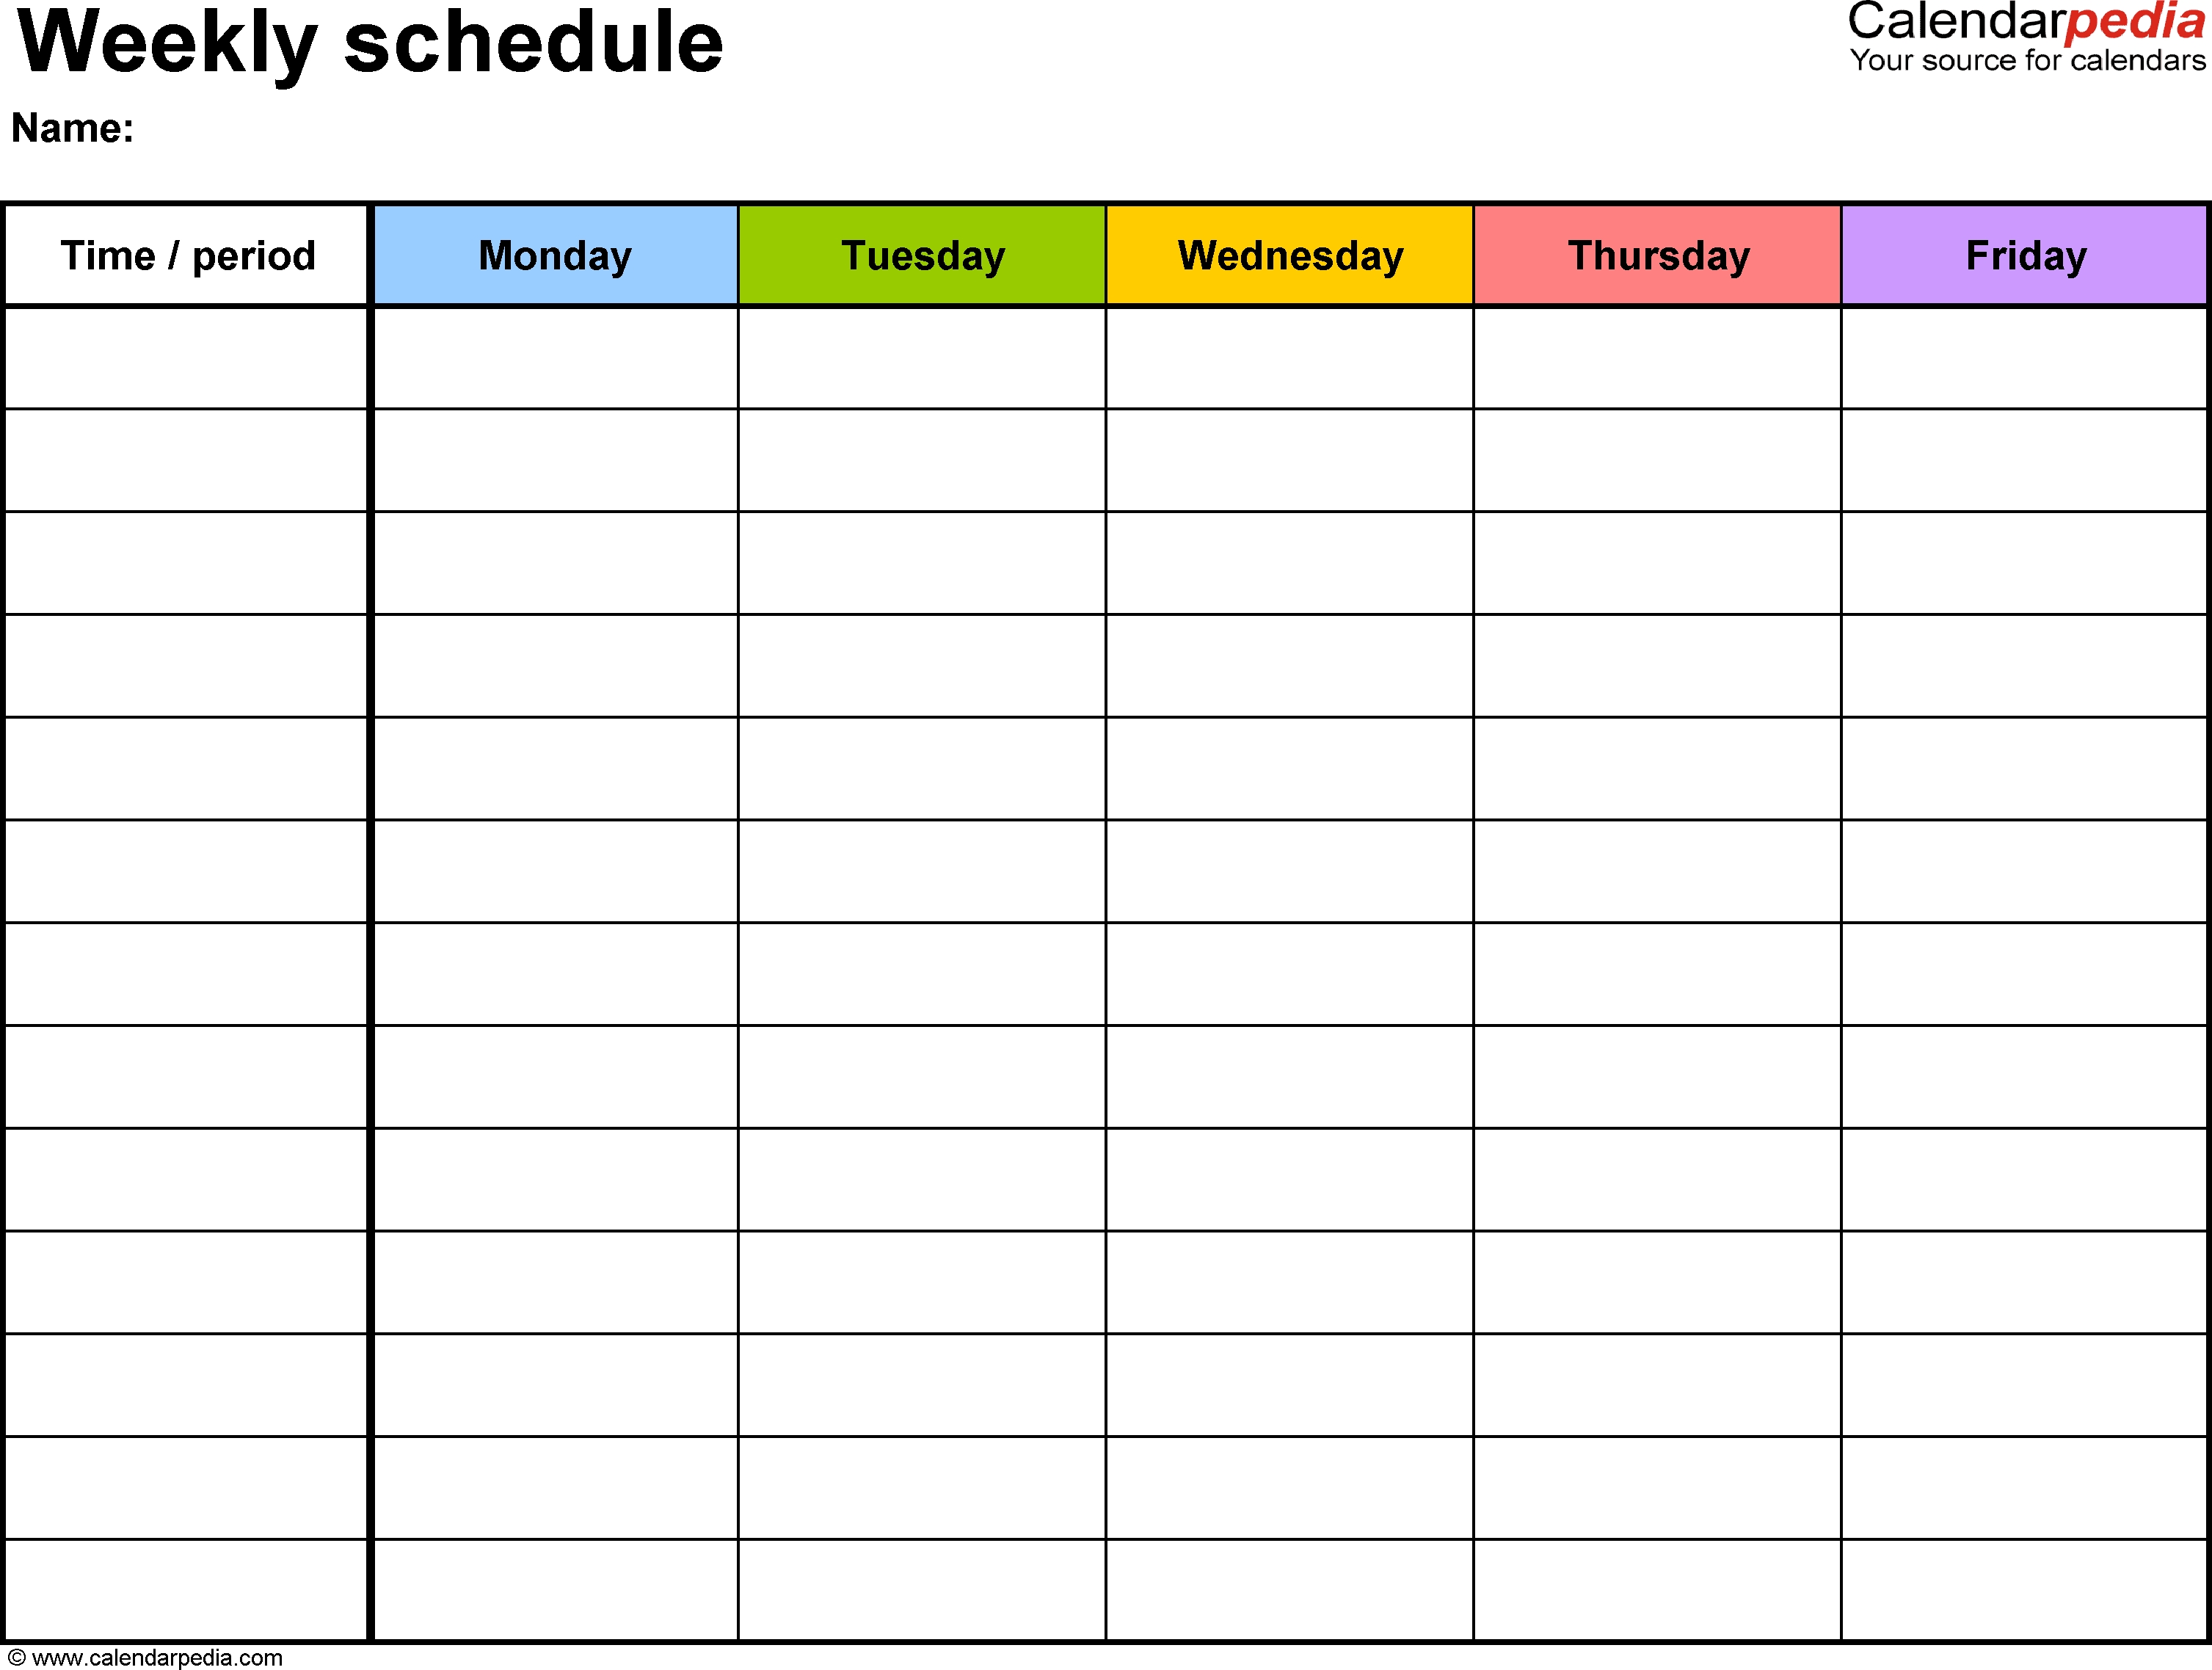 Free Weekly Schedule Templates For Pdf - 18 Templates  Template Printable For Monthly Calendar Lesson Plans For Childrens Church